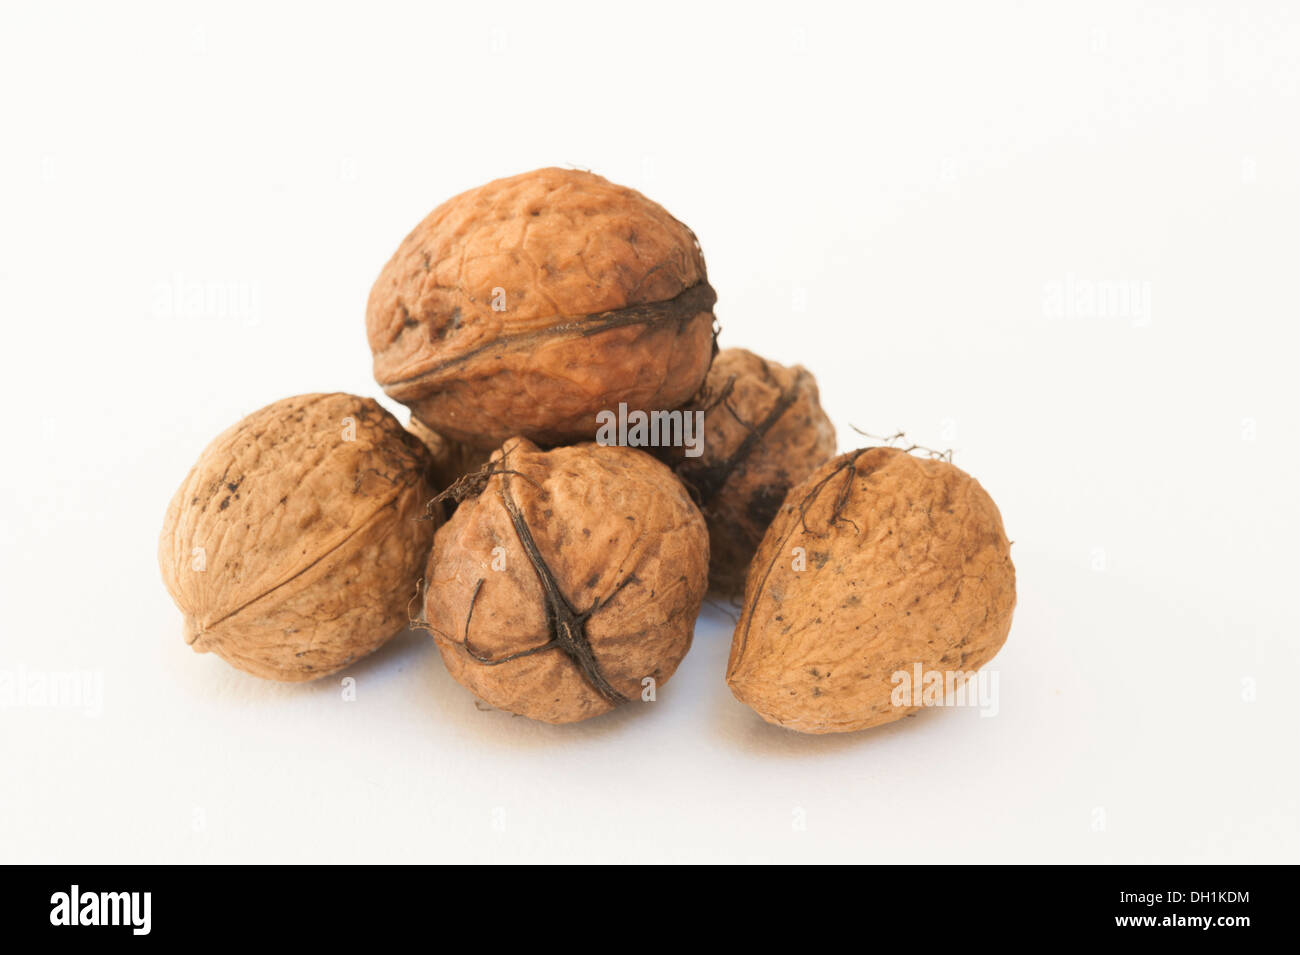 Wet walnuts on a white background - Stock Image